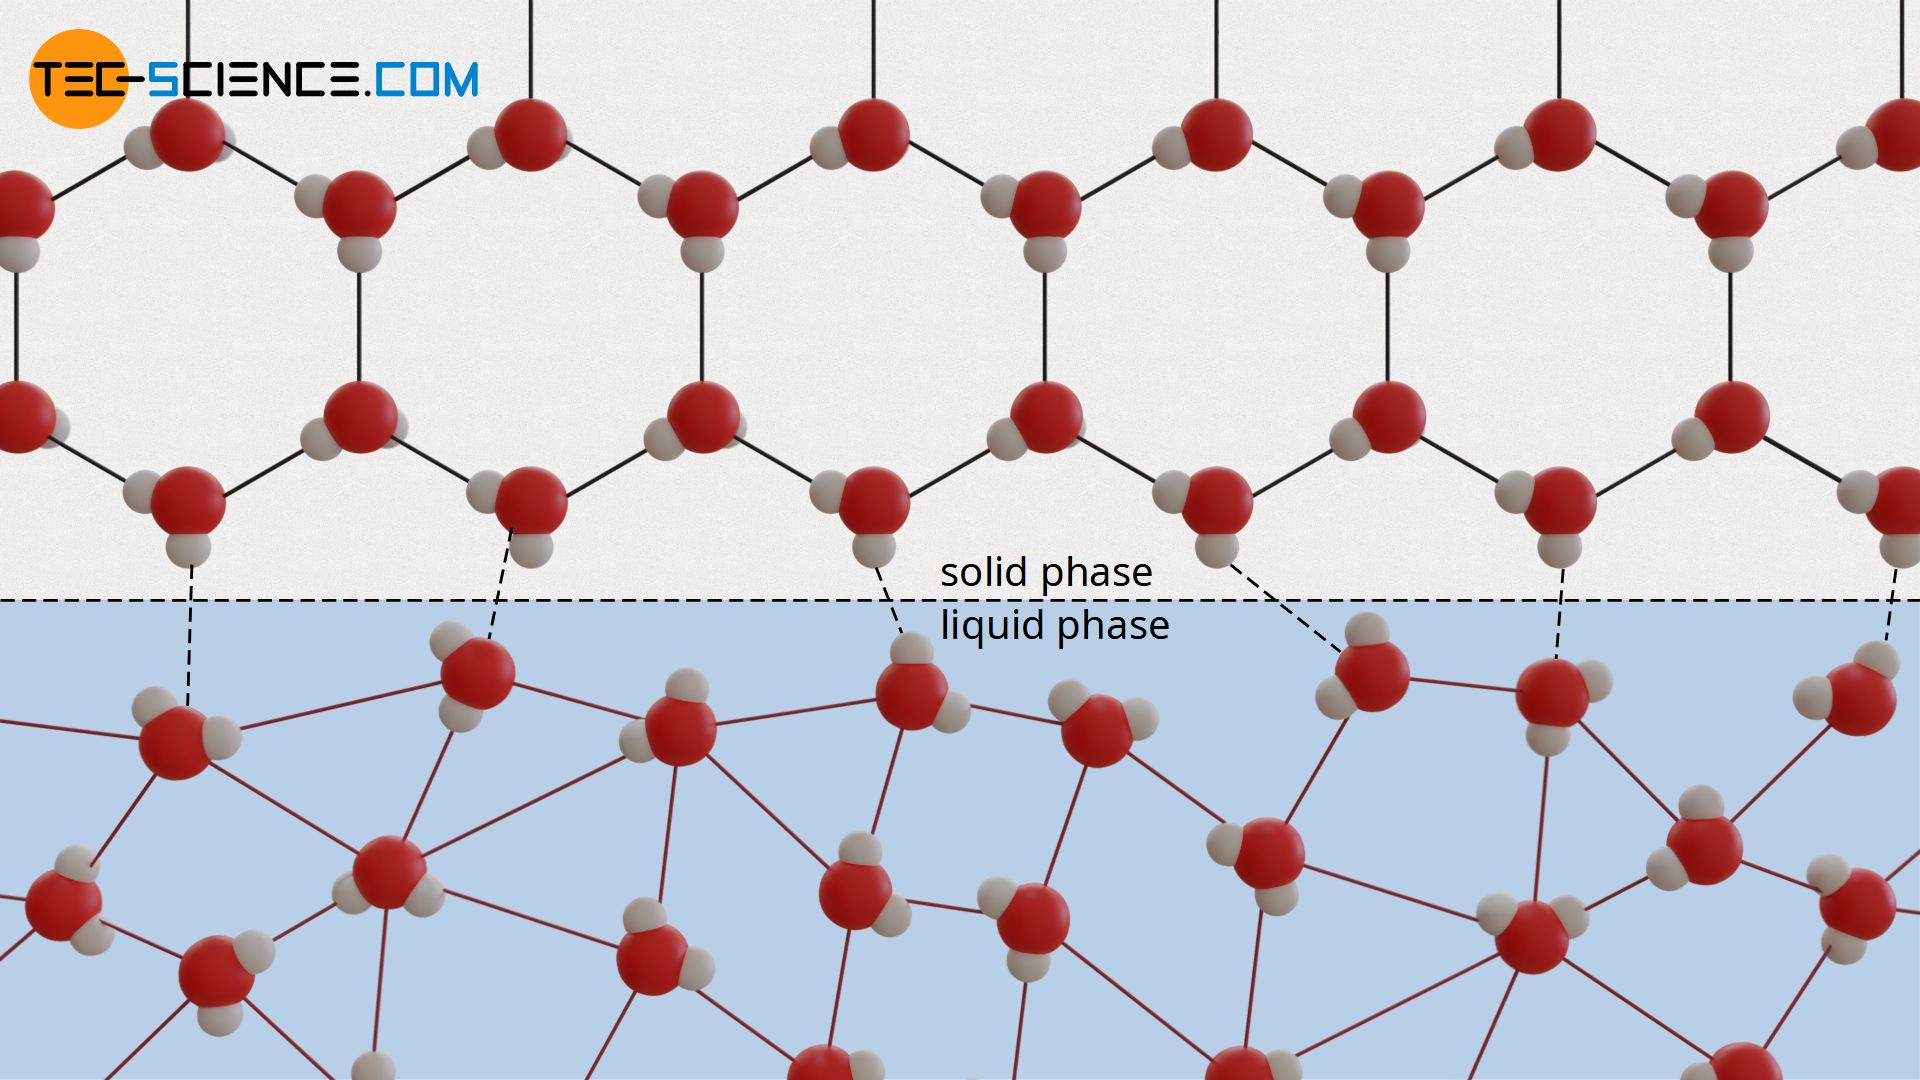 Transition from the solid to the liquid phase